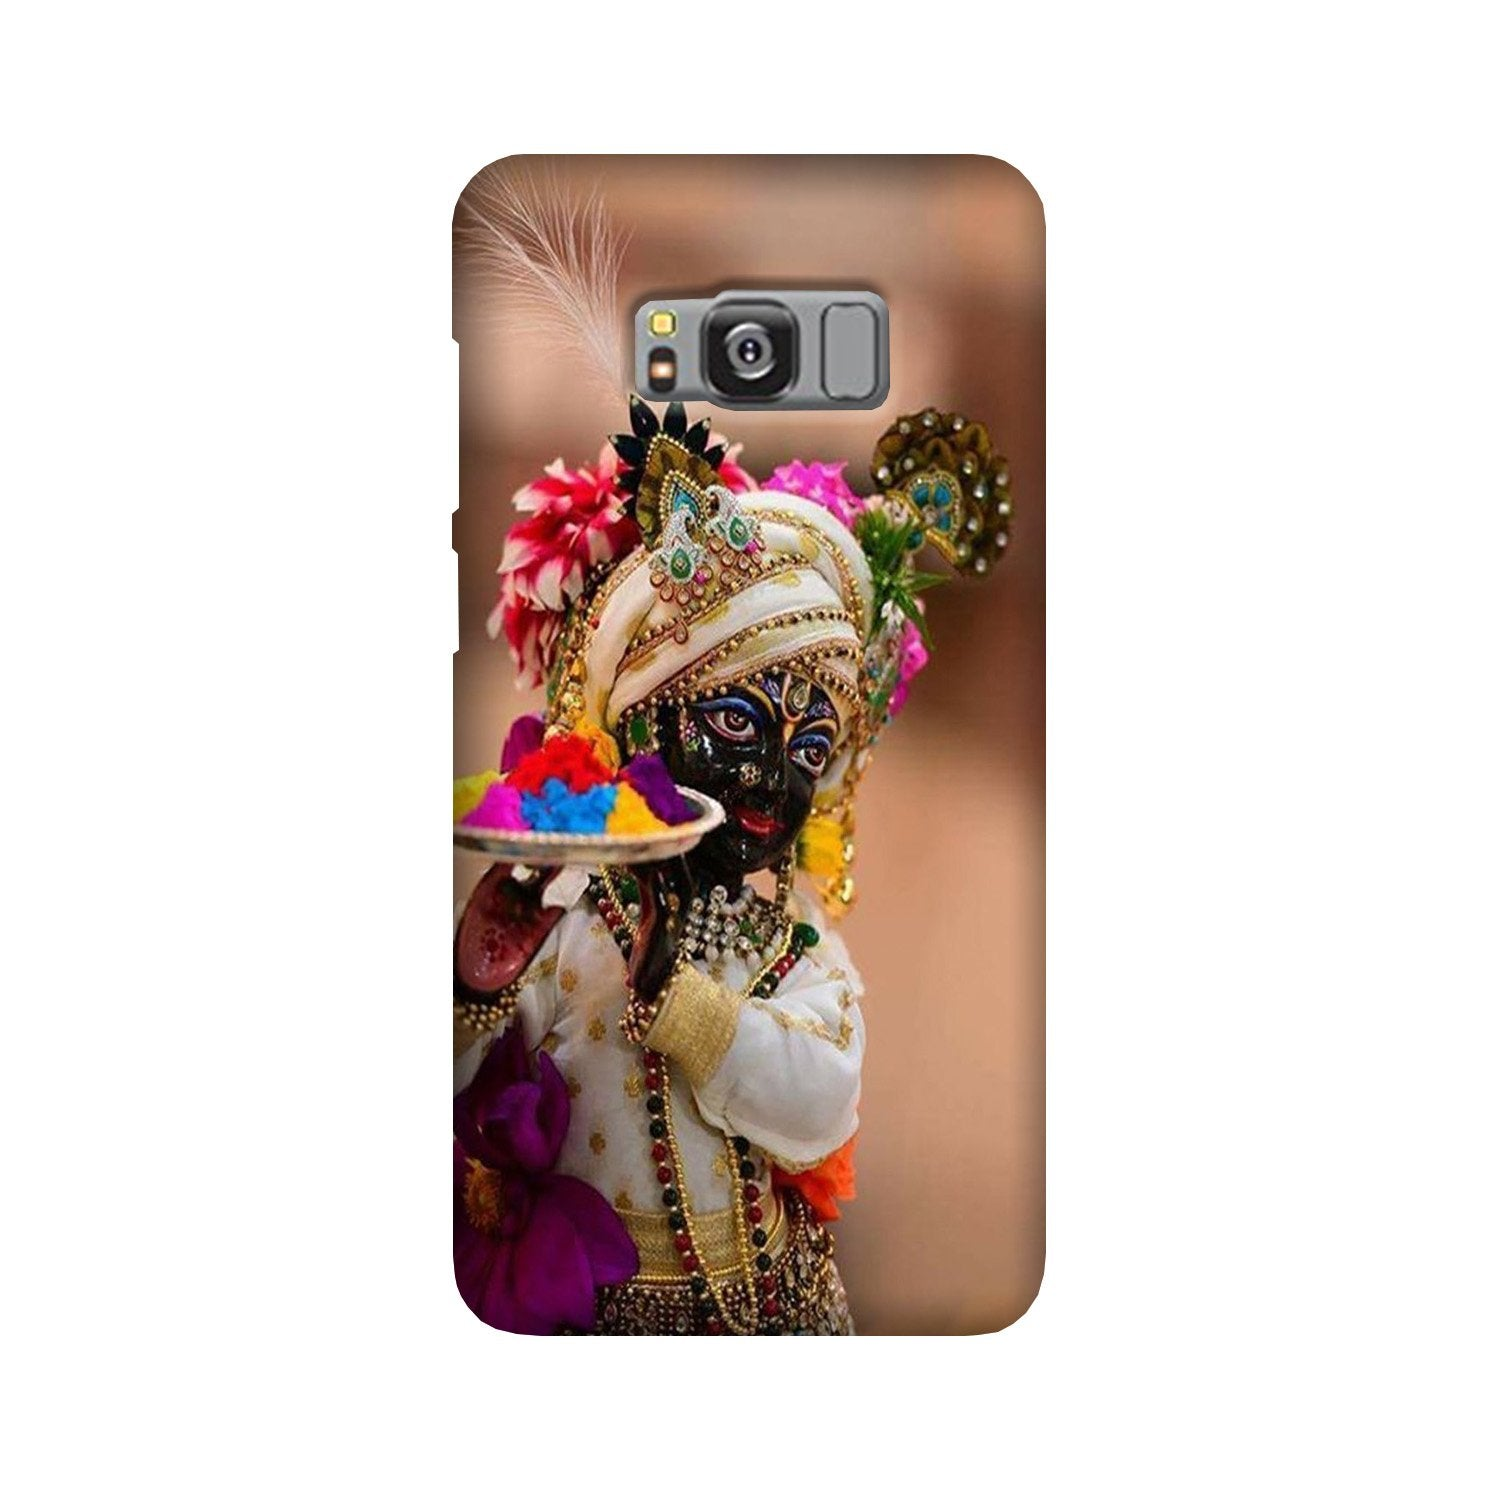 Lord Krishna2 Case for Galaxy S8 Plus